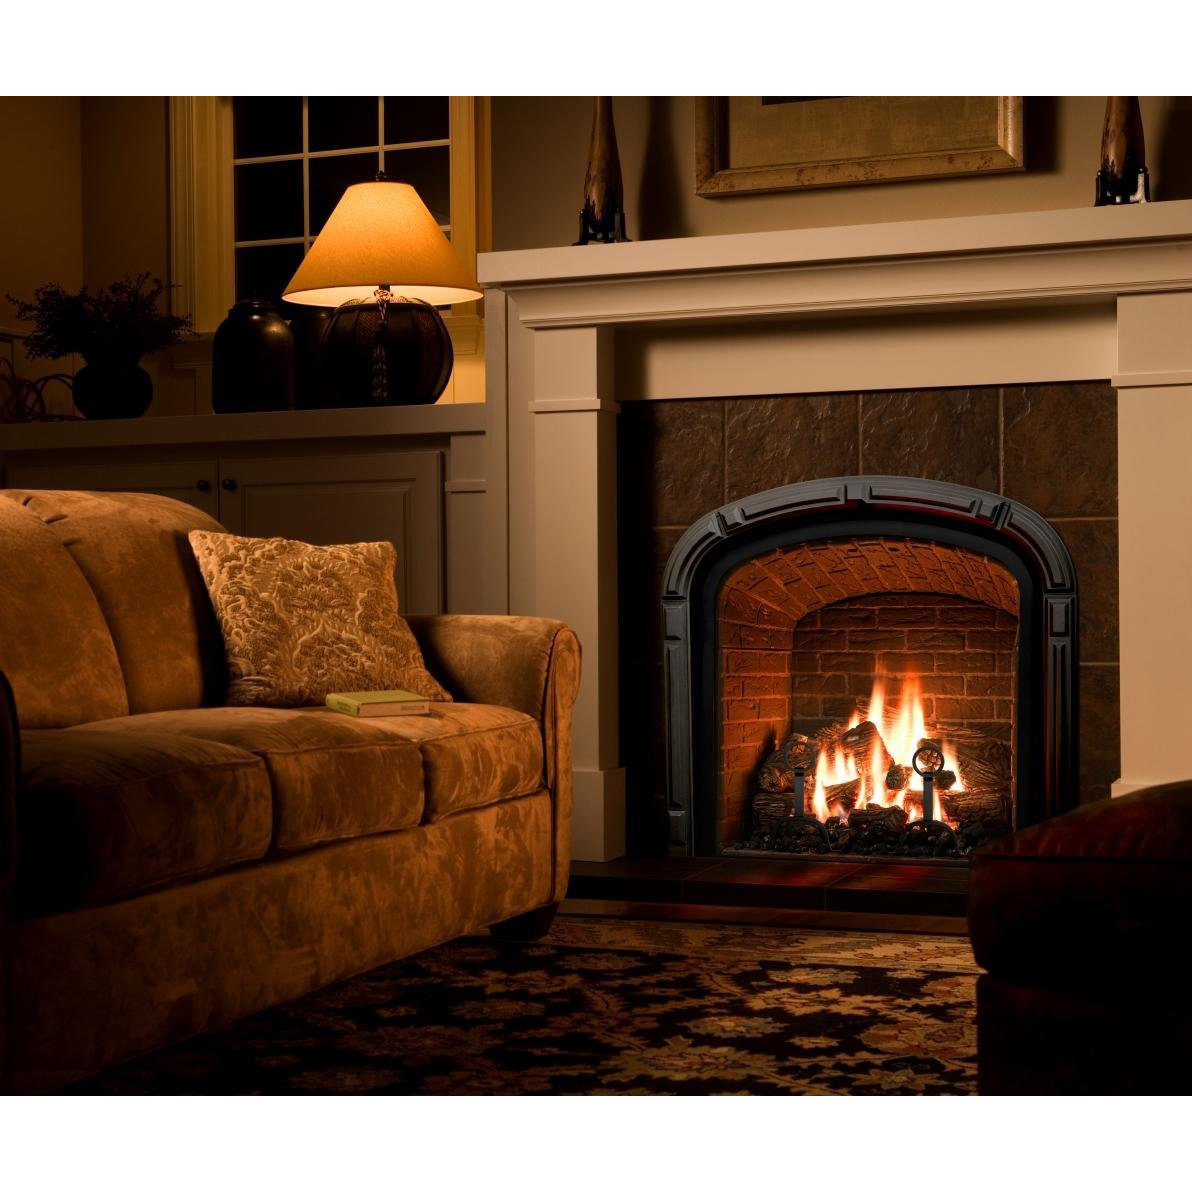 Set of 10 Ceramic Fiber Propane Gel Ethanol Gas Fireplace